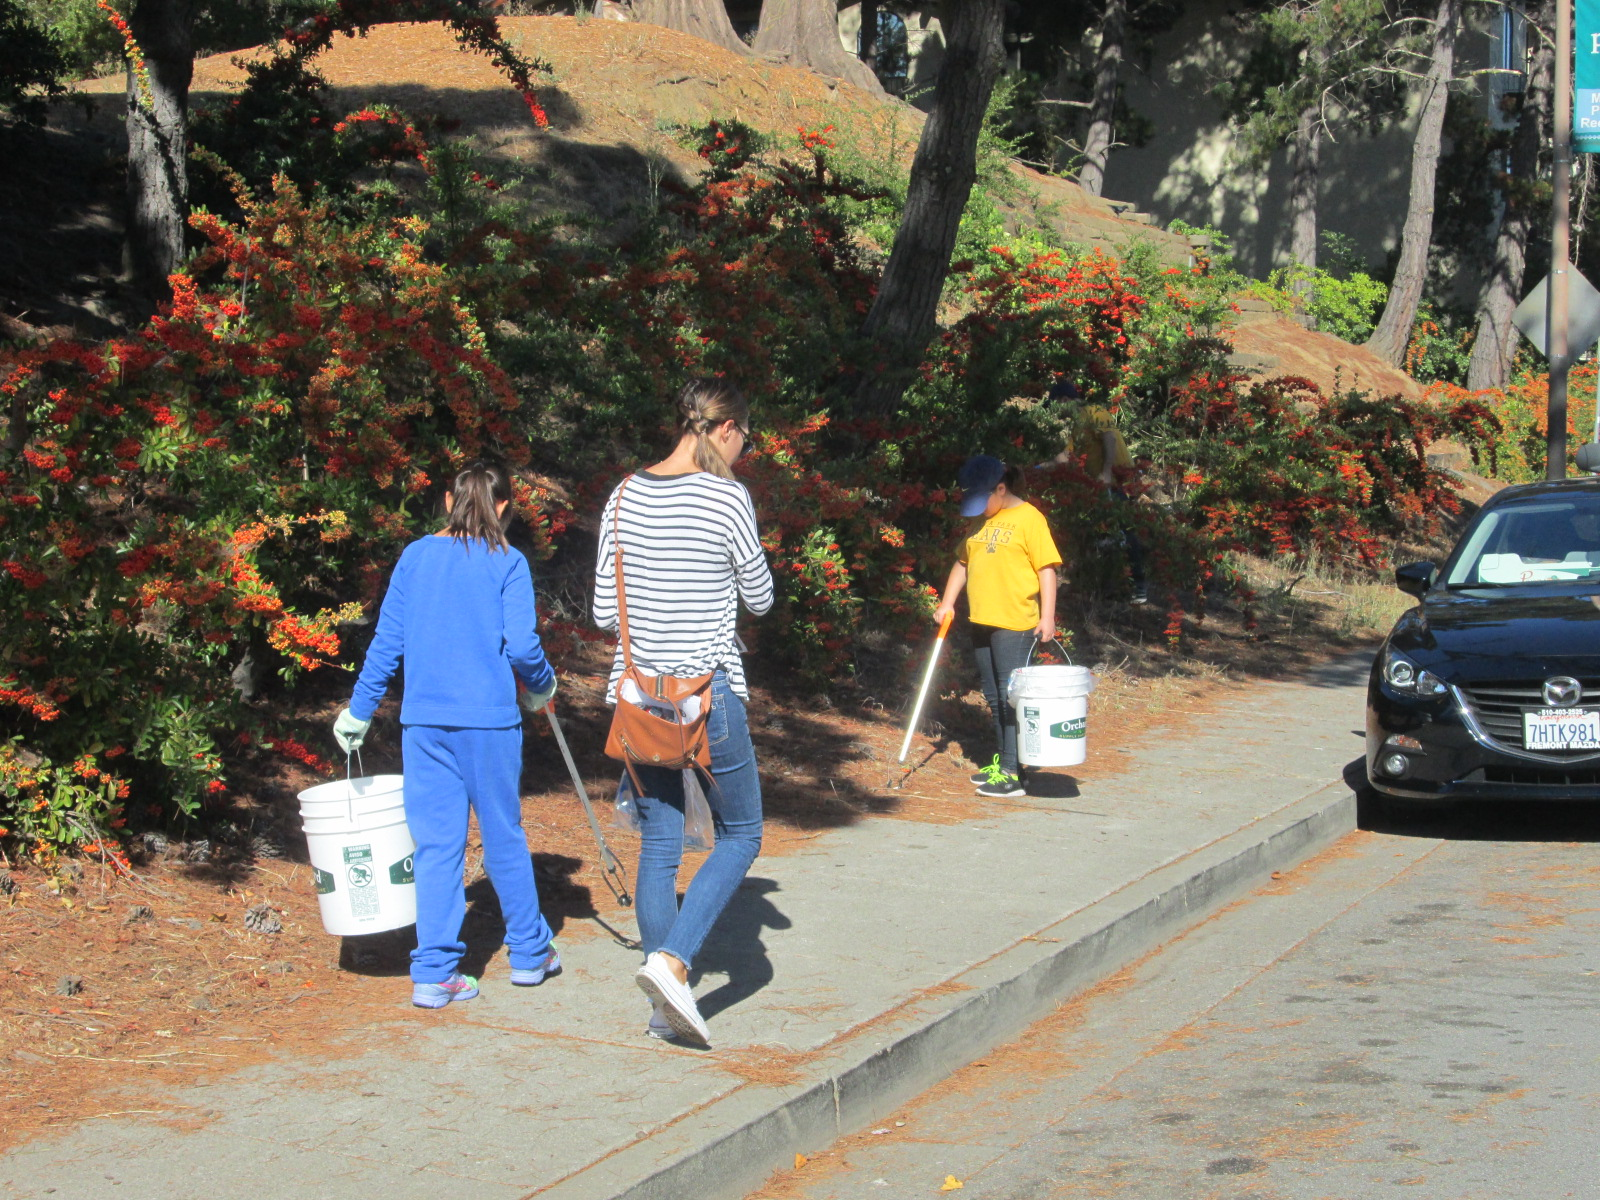 Volunteers collect litter near Central Park